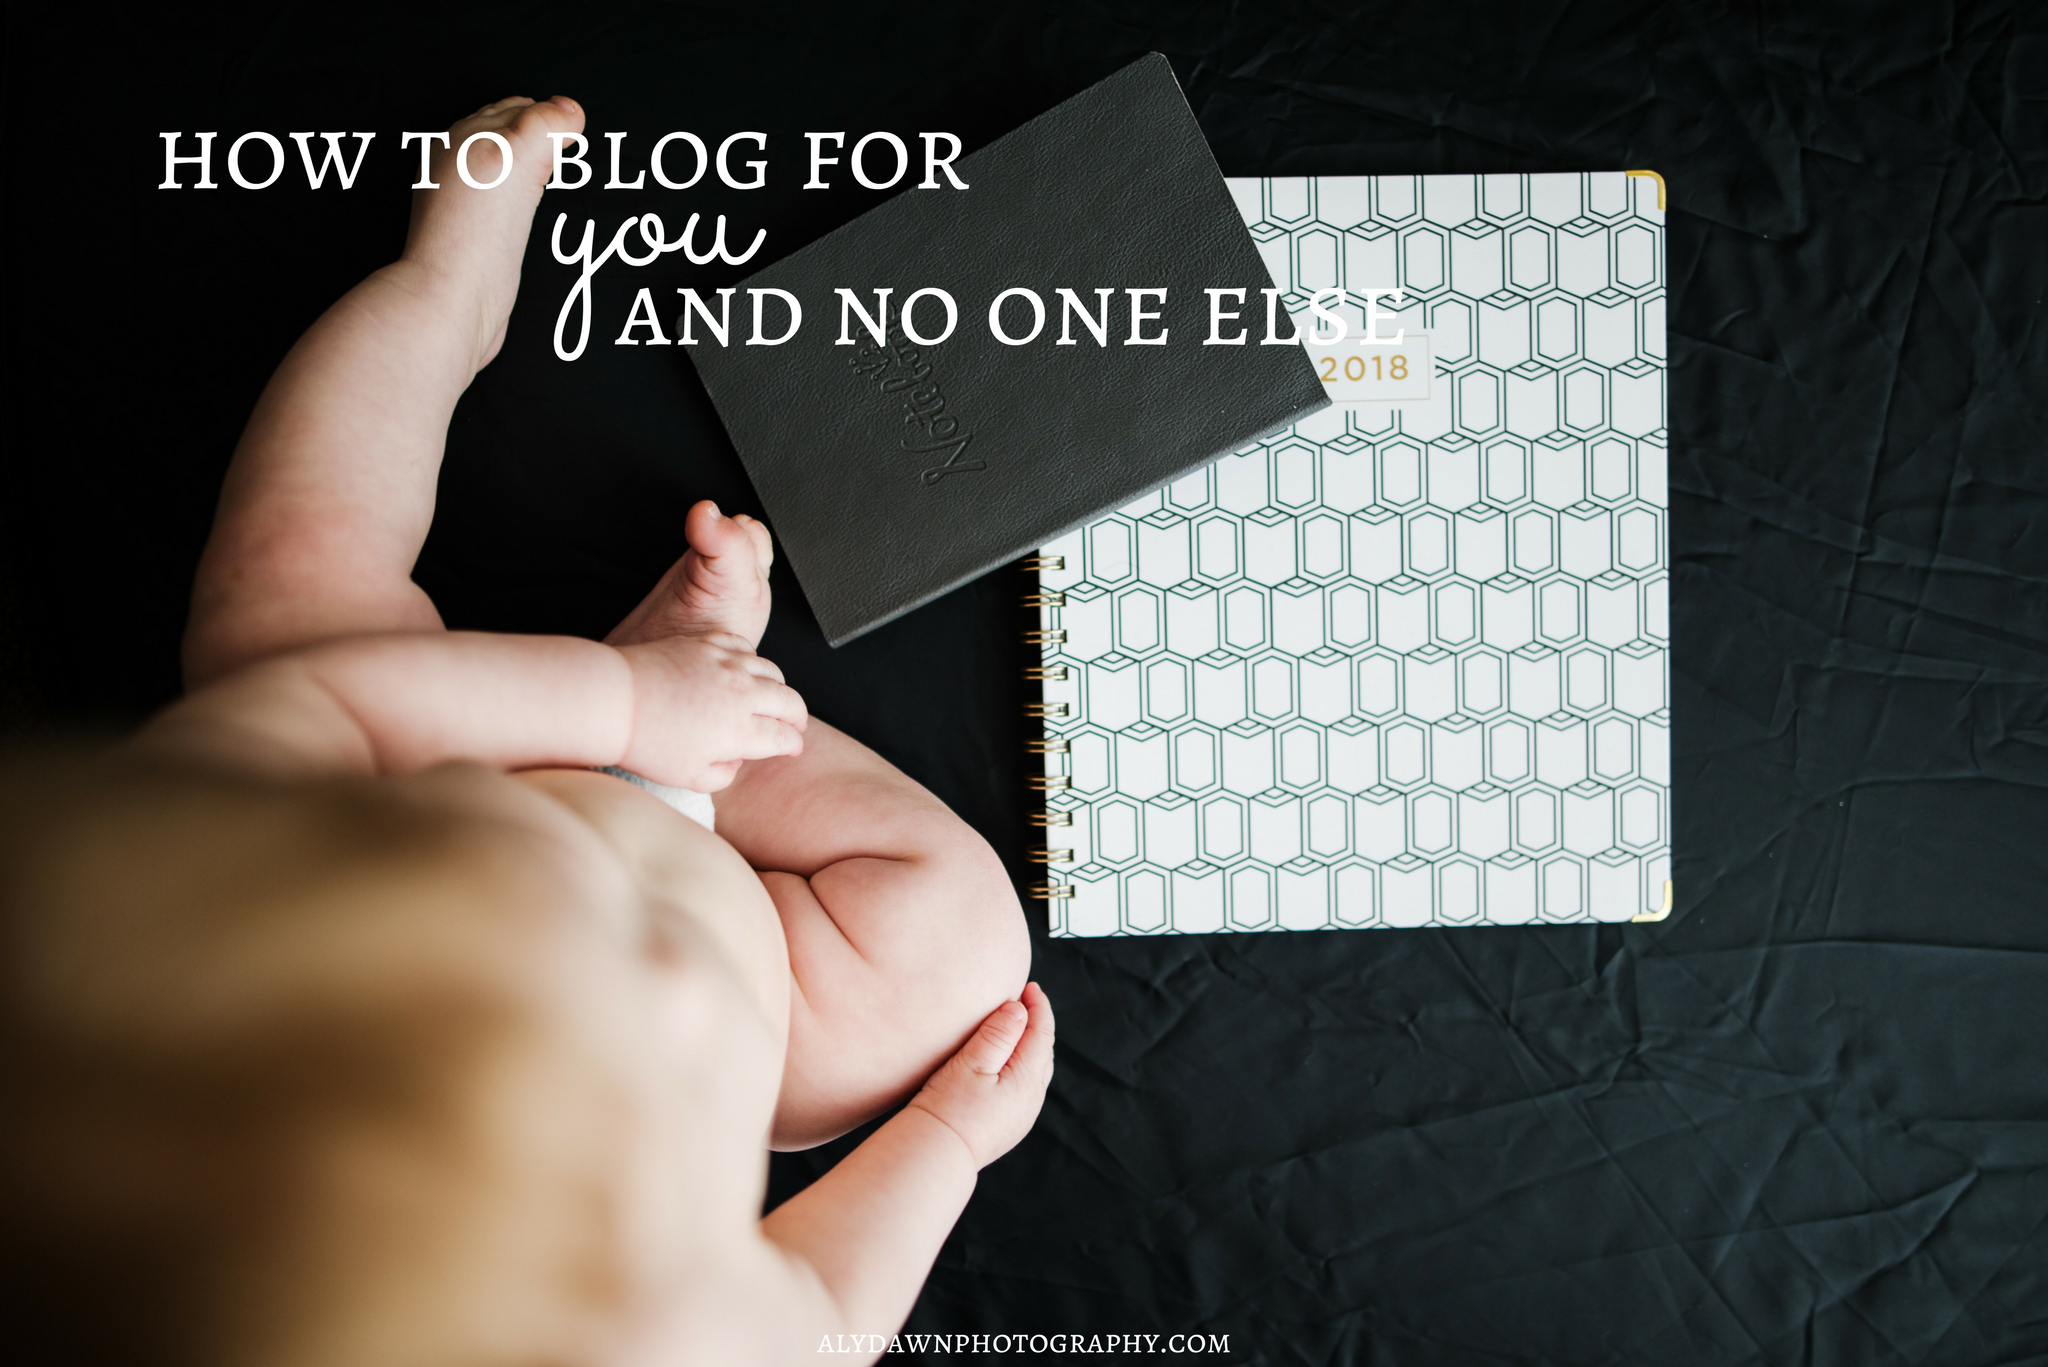 How to Blog for You and No One Else